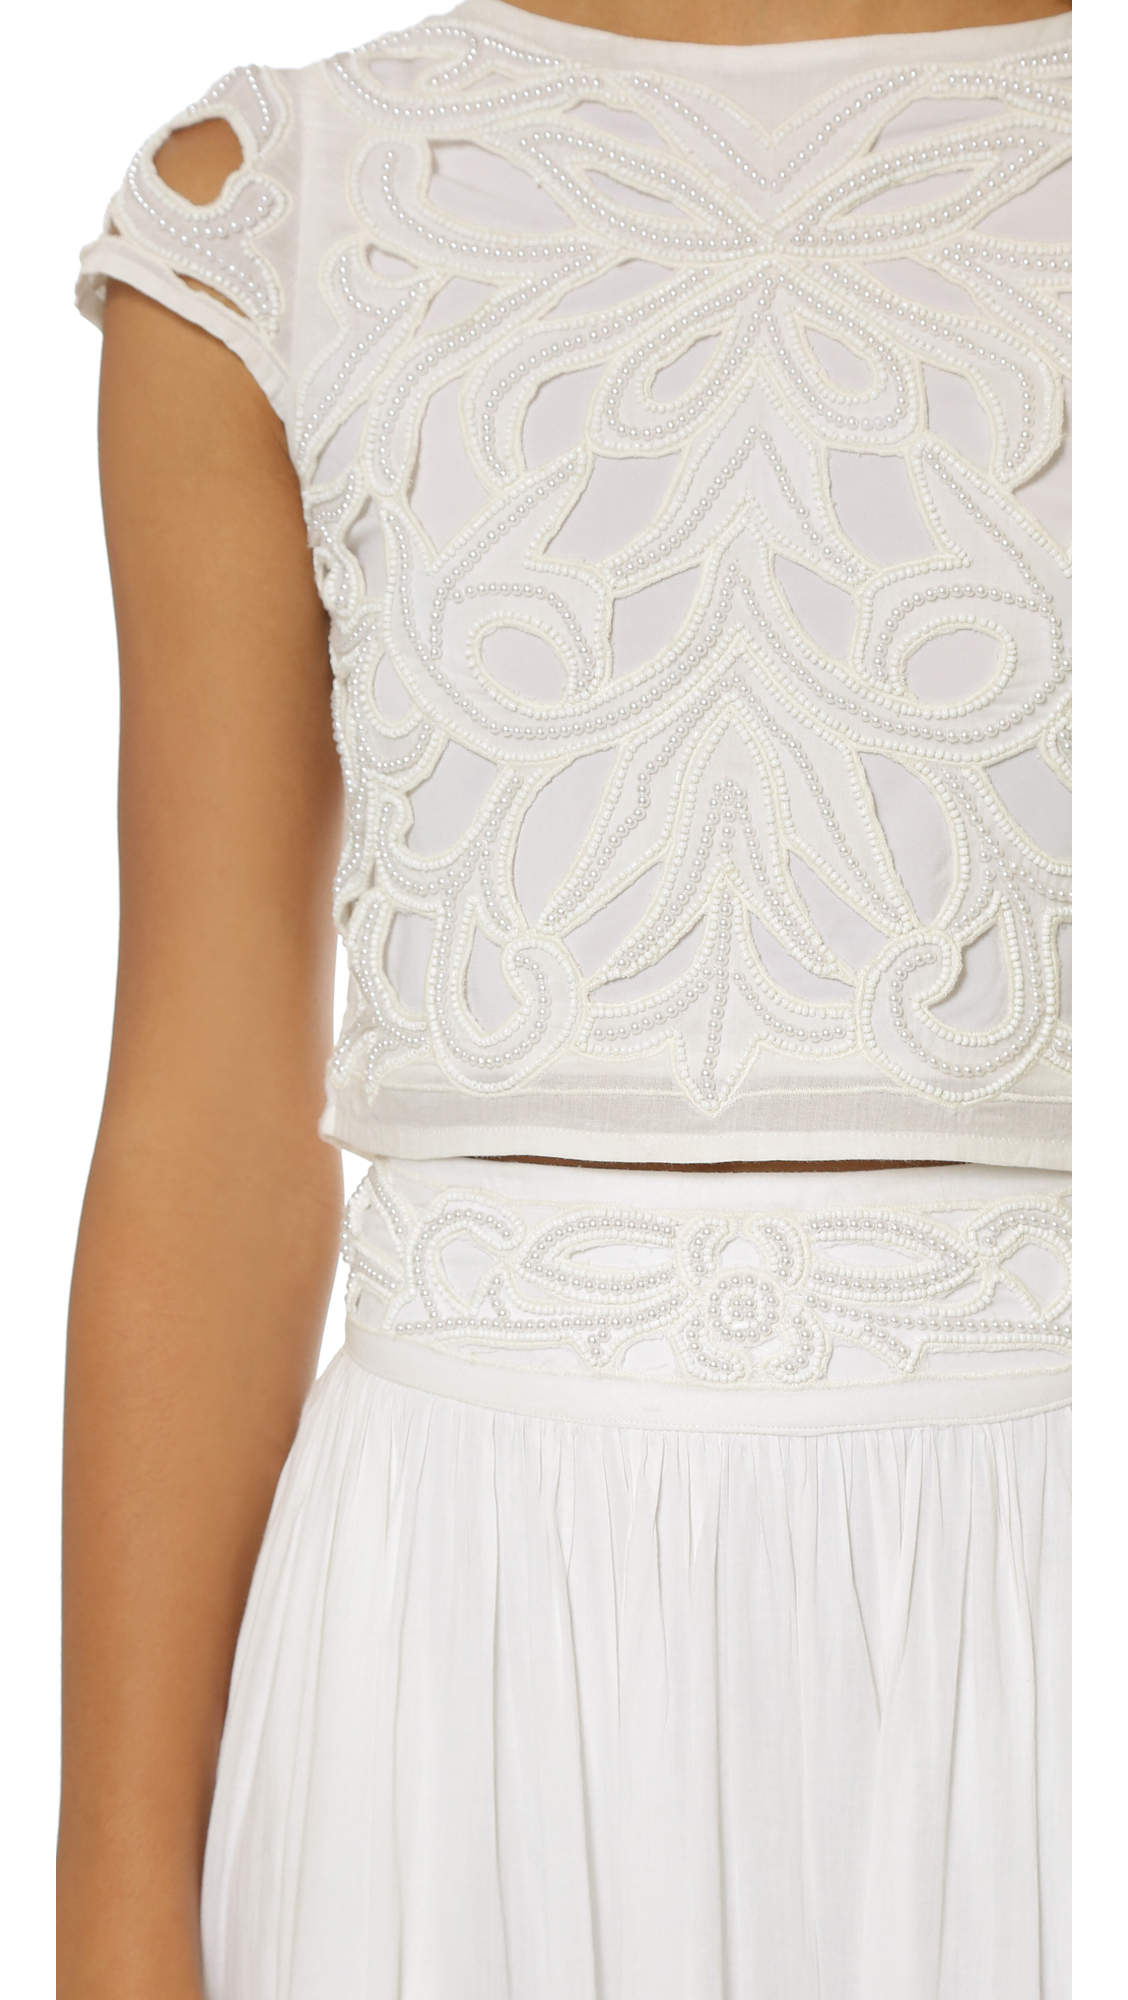 393ee72f64f4a Lyst - Alice + Olivia Abbi Embellished Crop Top in White